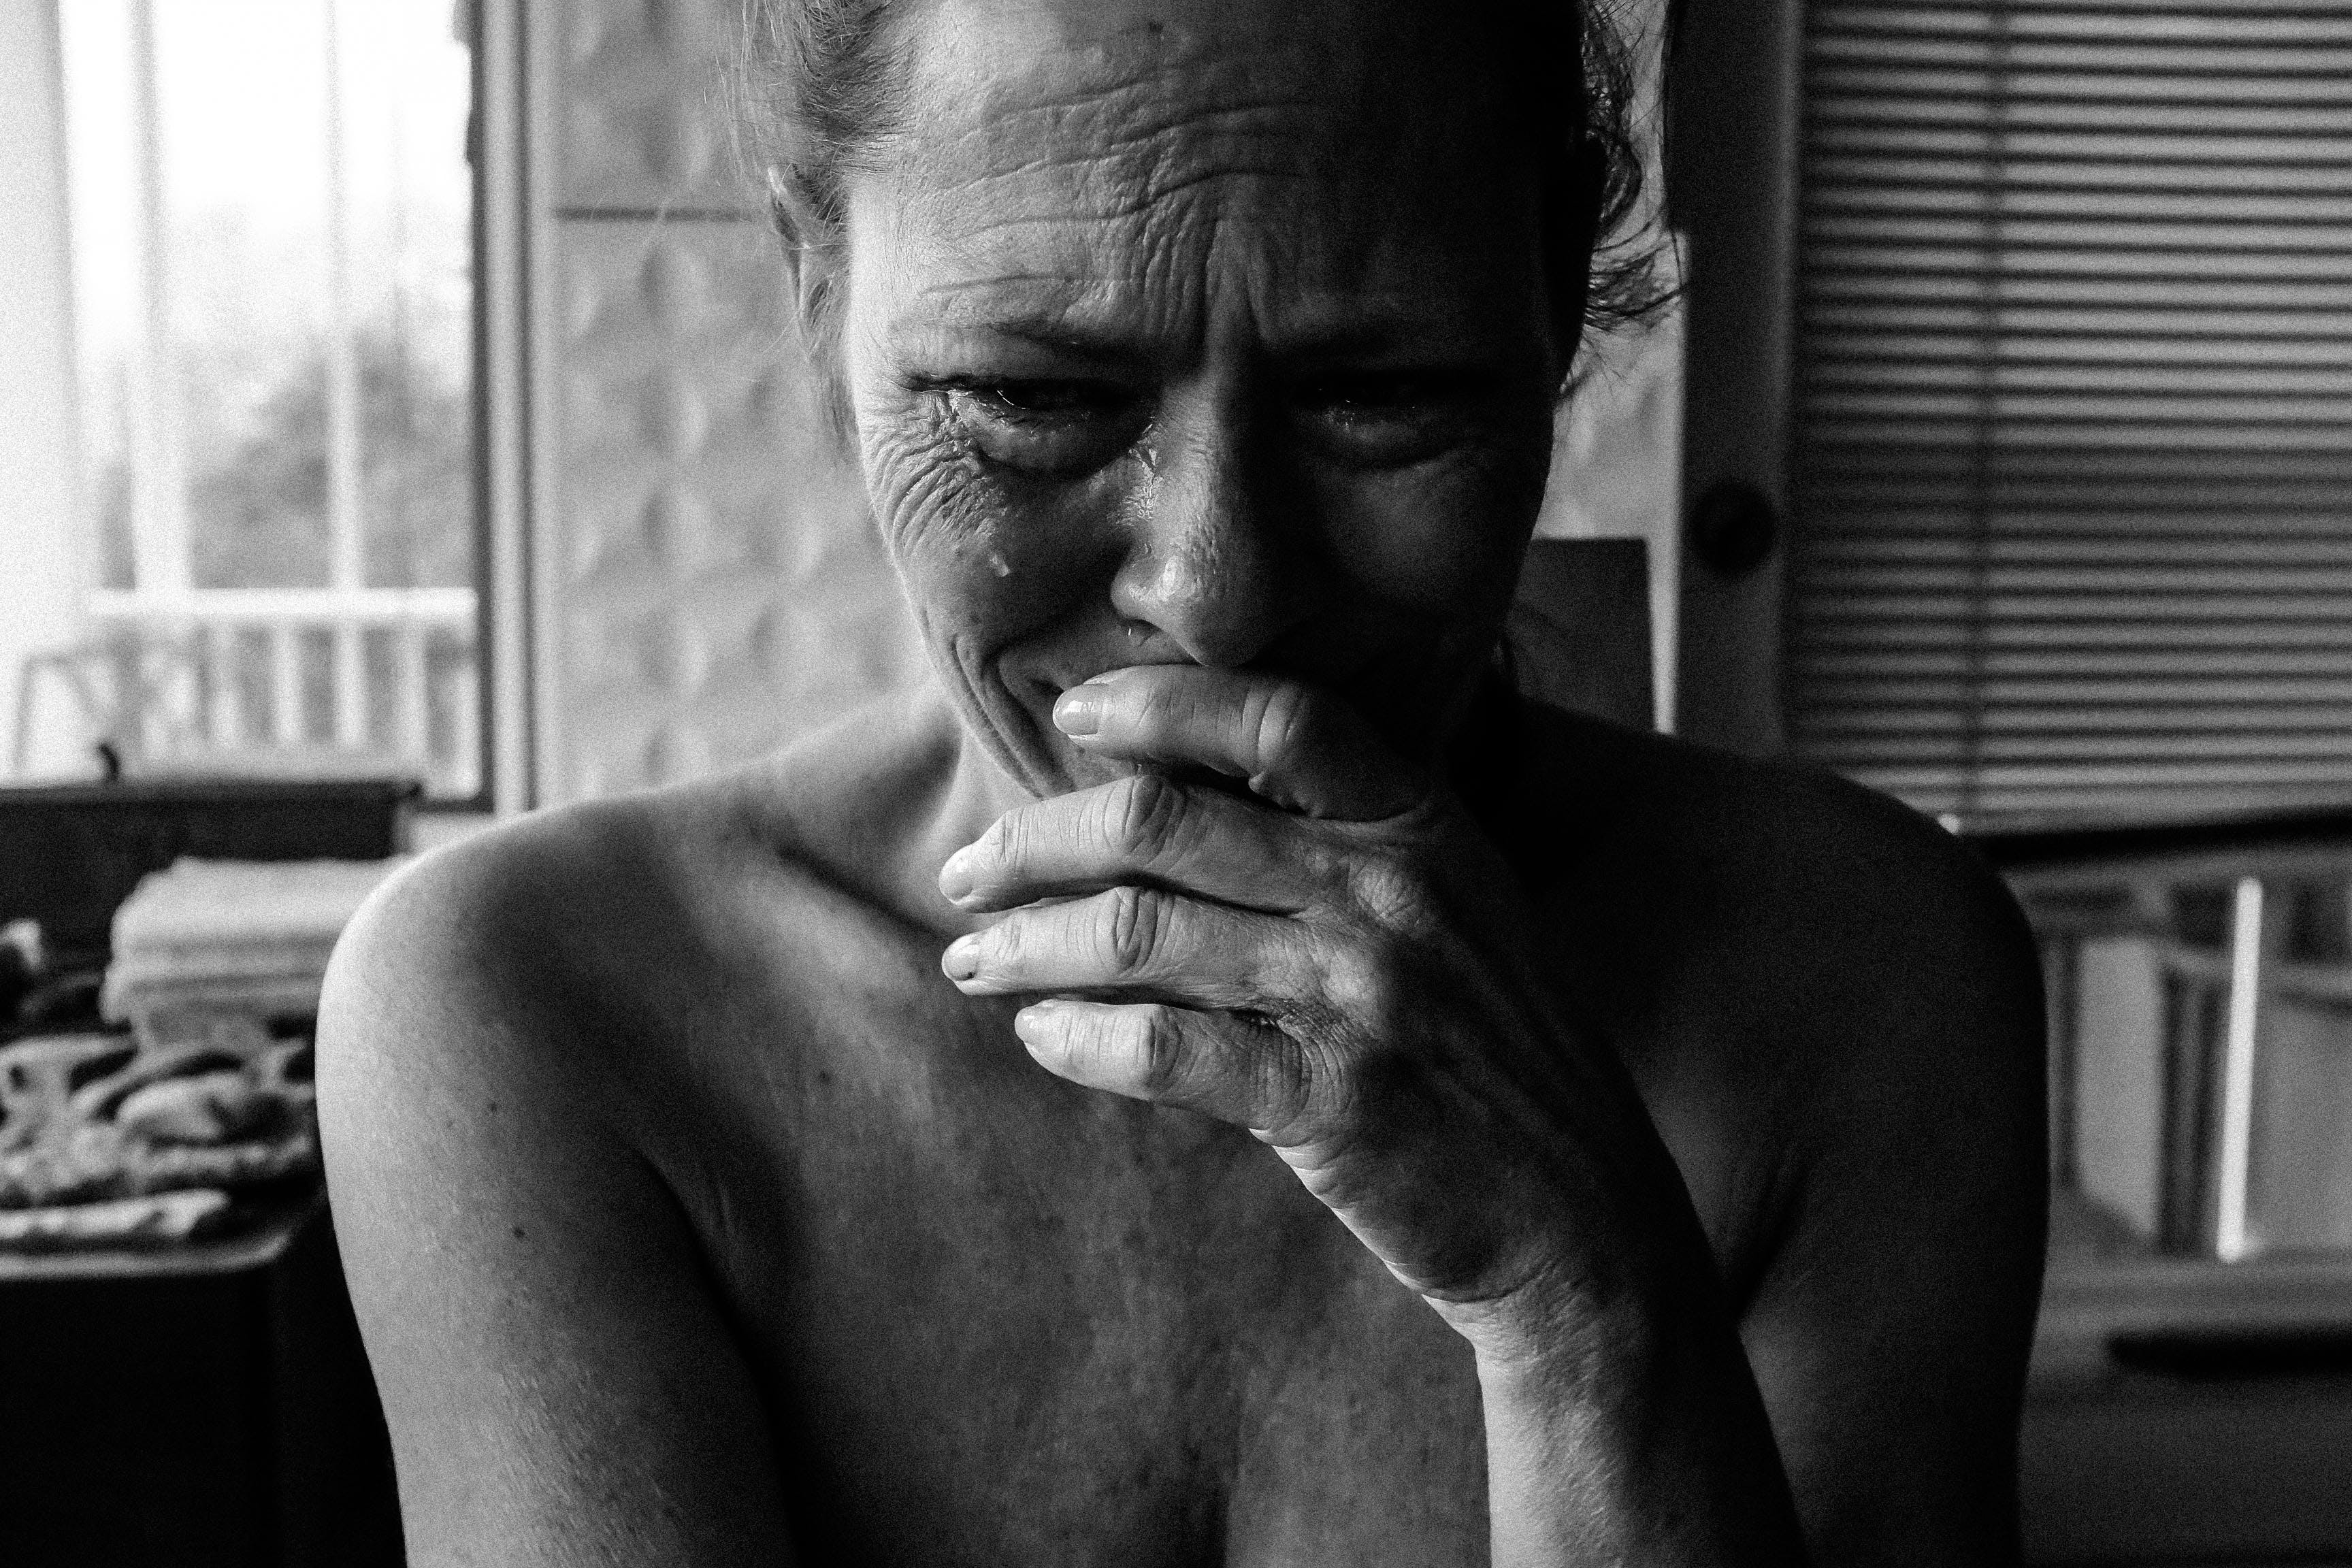 Close-up Photography of Crying Woman Next Inside Room